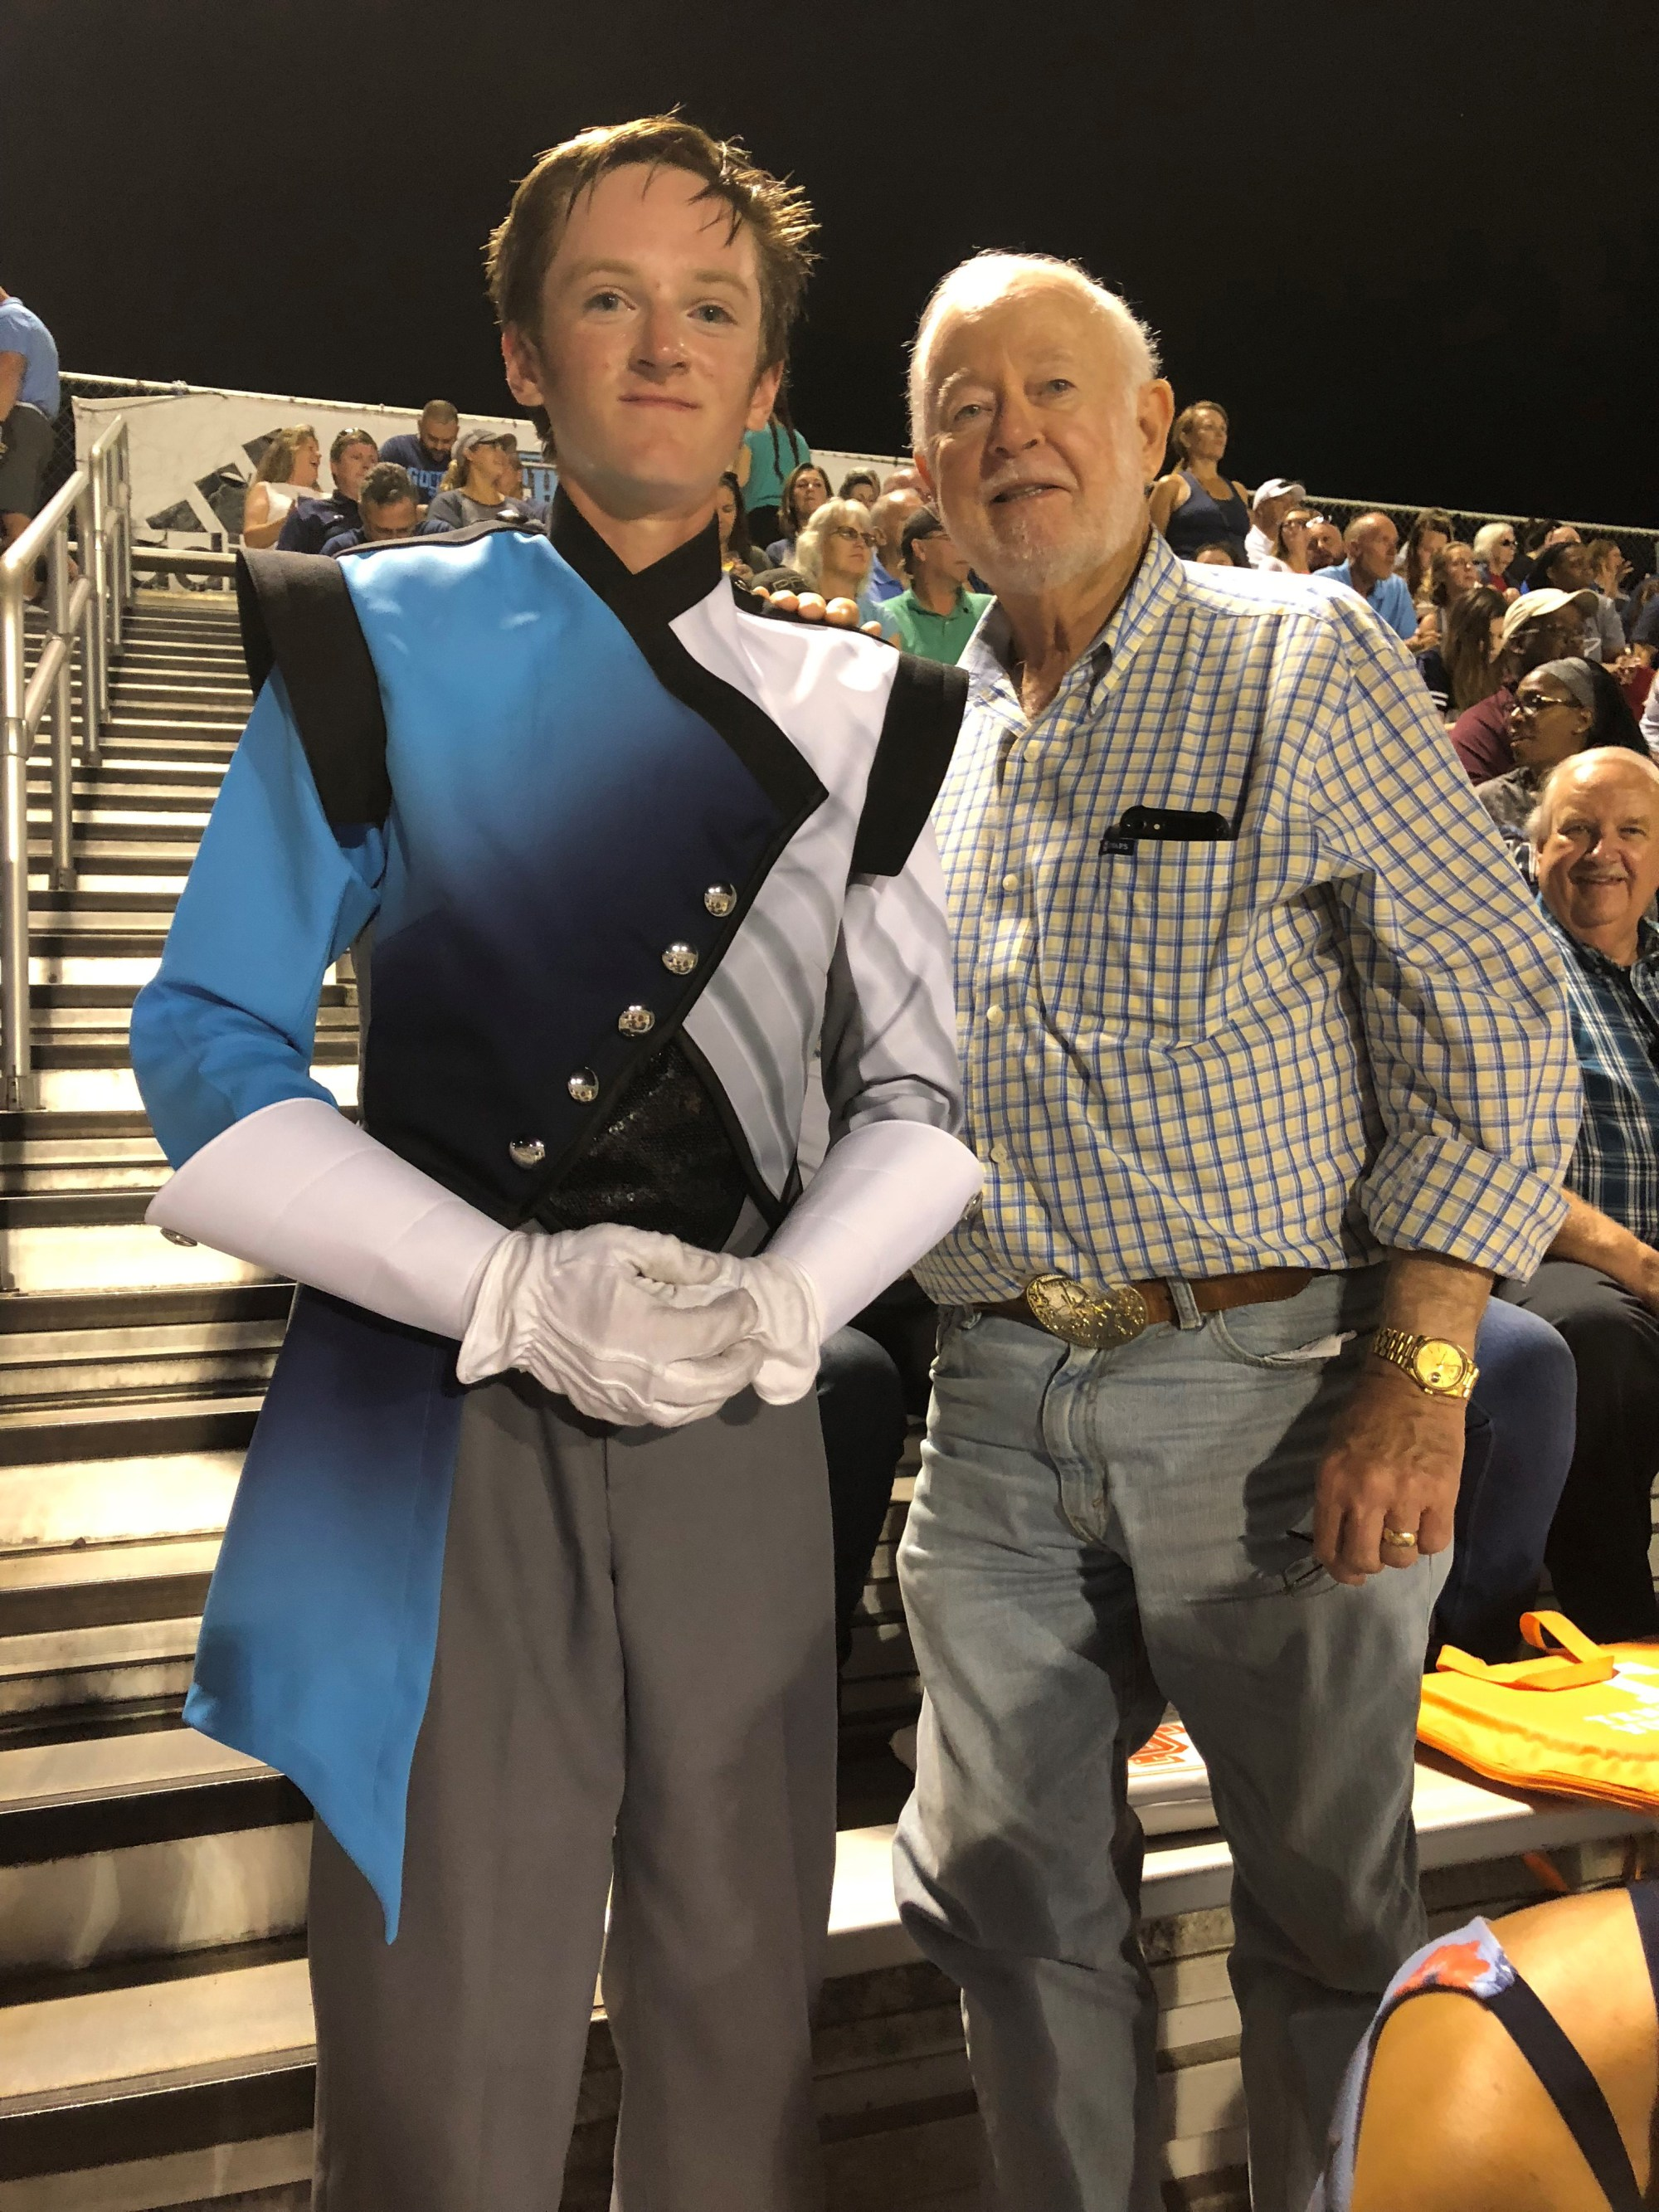 Ken Weathers: My dad and son when they came to visit last year and watch my son perform in his high school marching band.